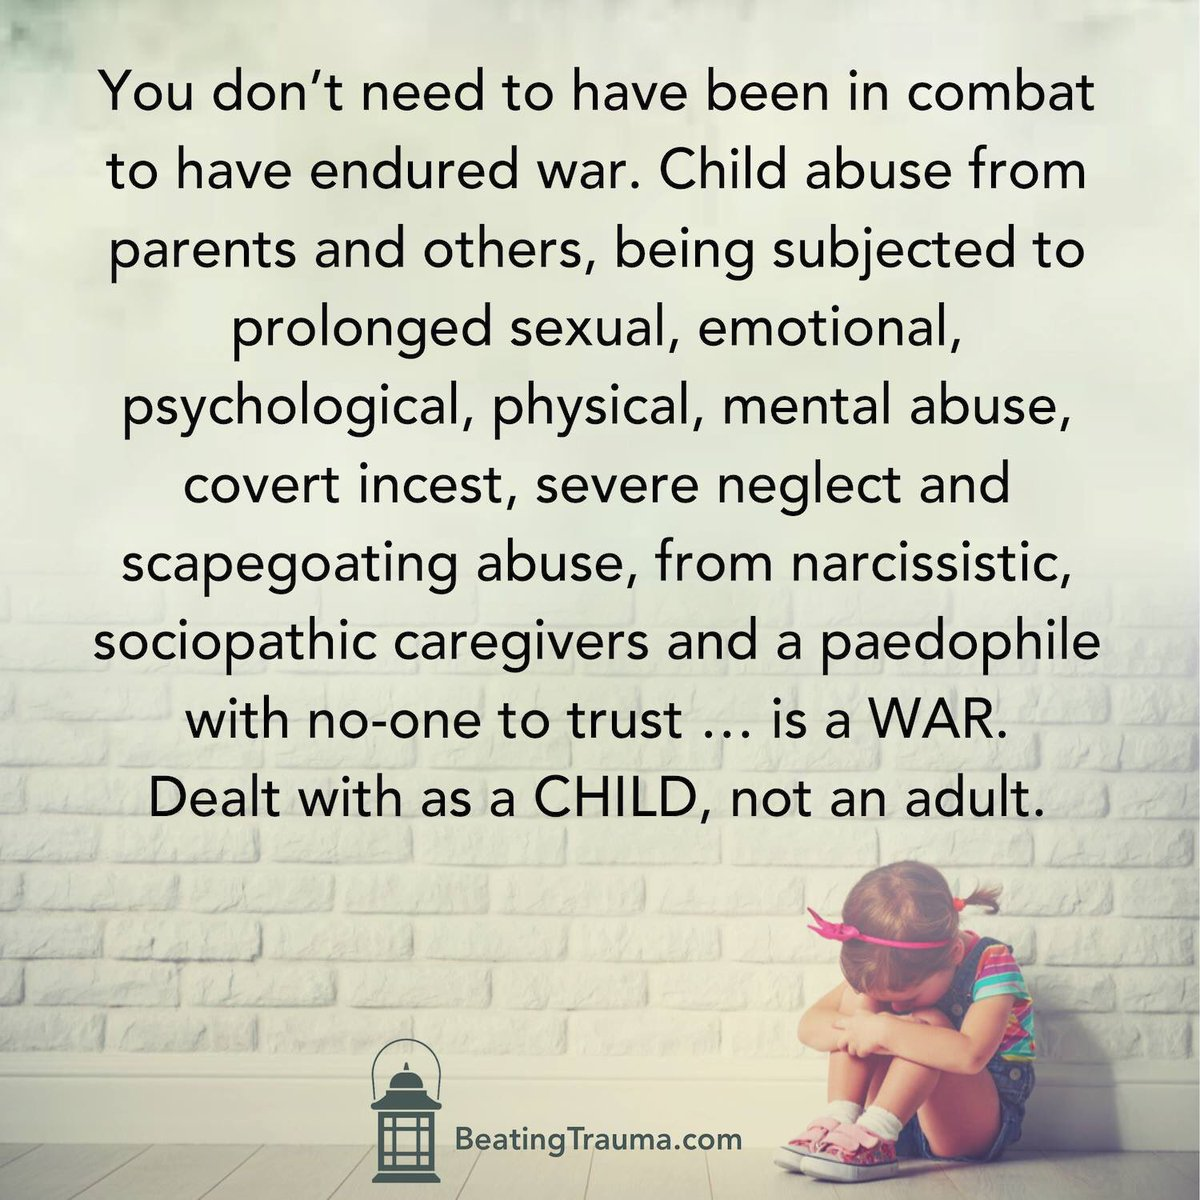 Abused Children Carry Trauma In Their >> Janine Jury On Twitter You Don T Need To Have Been In Combat To